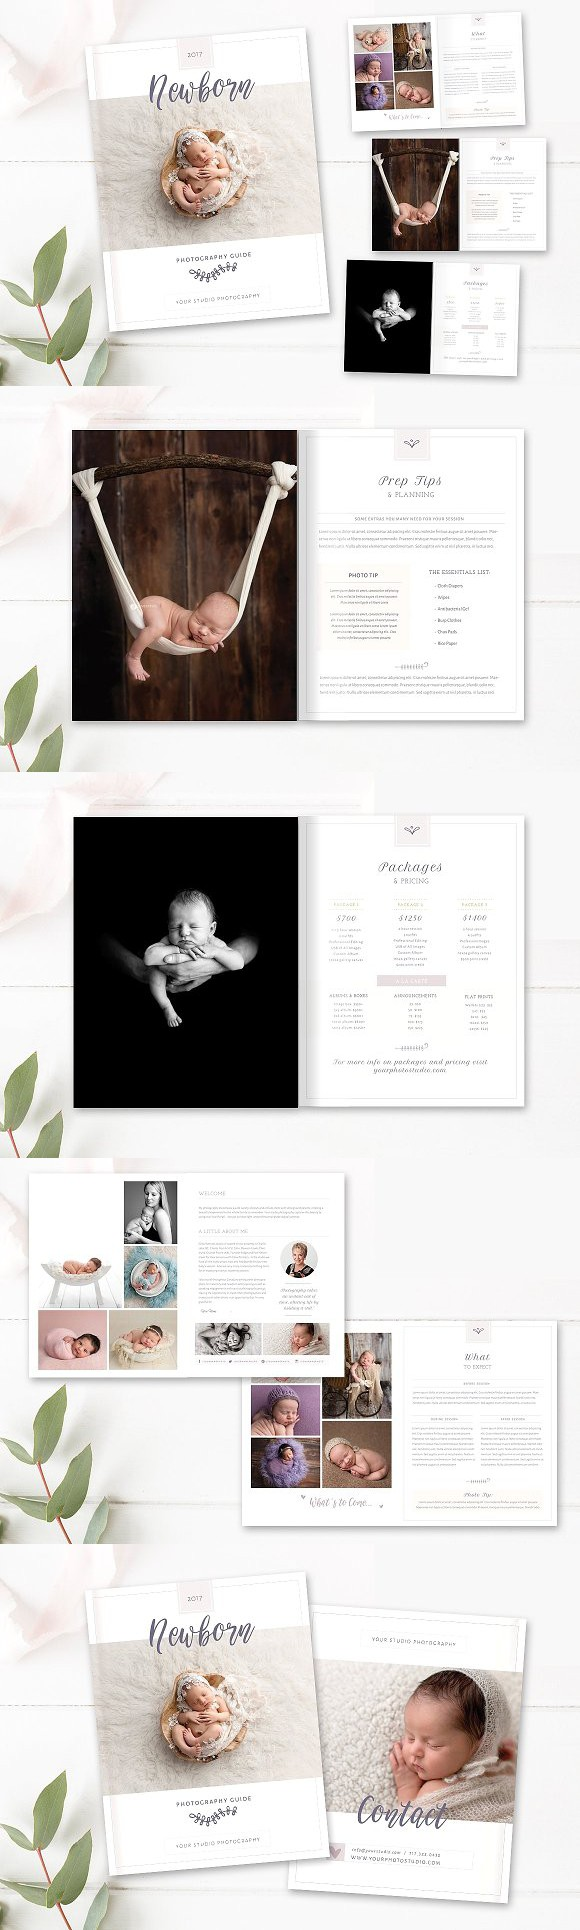 Newborn Welcome Guide 10 Pages INDD. Magazine Templates | Magazine ...